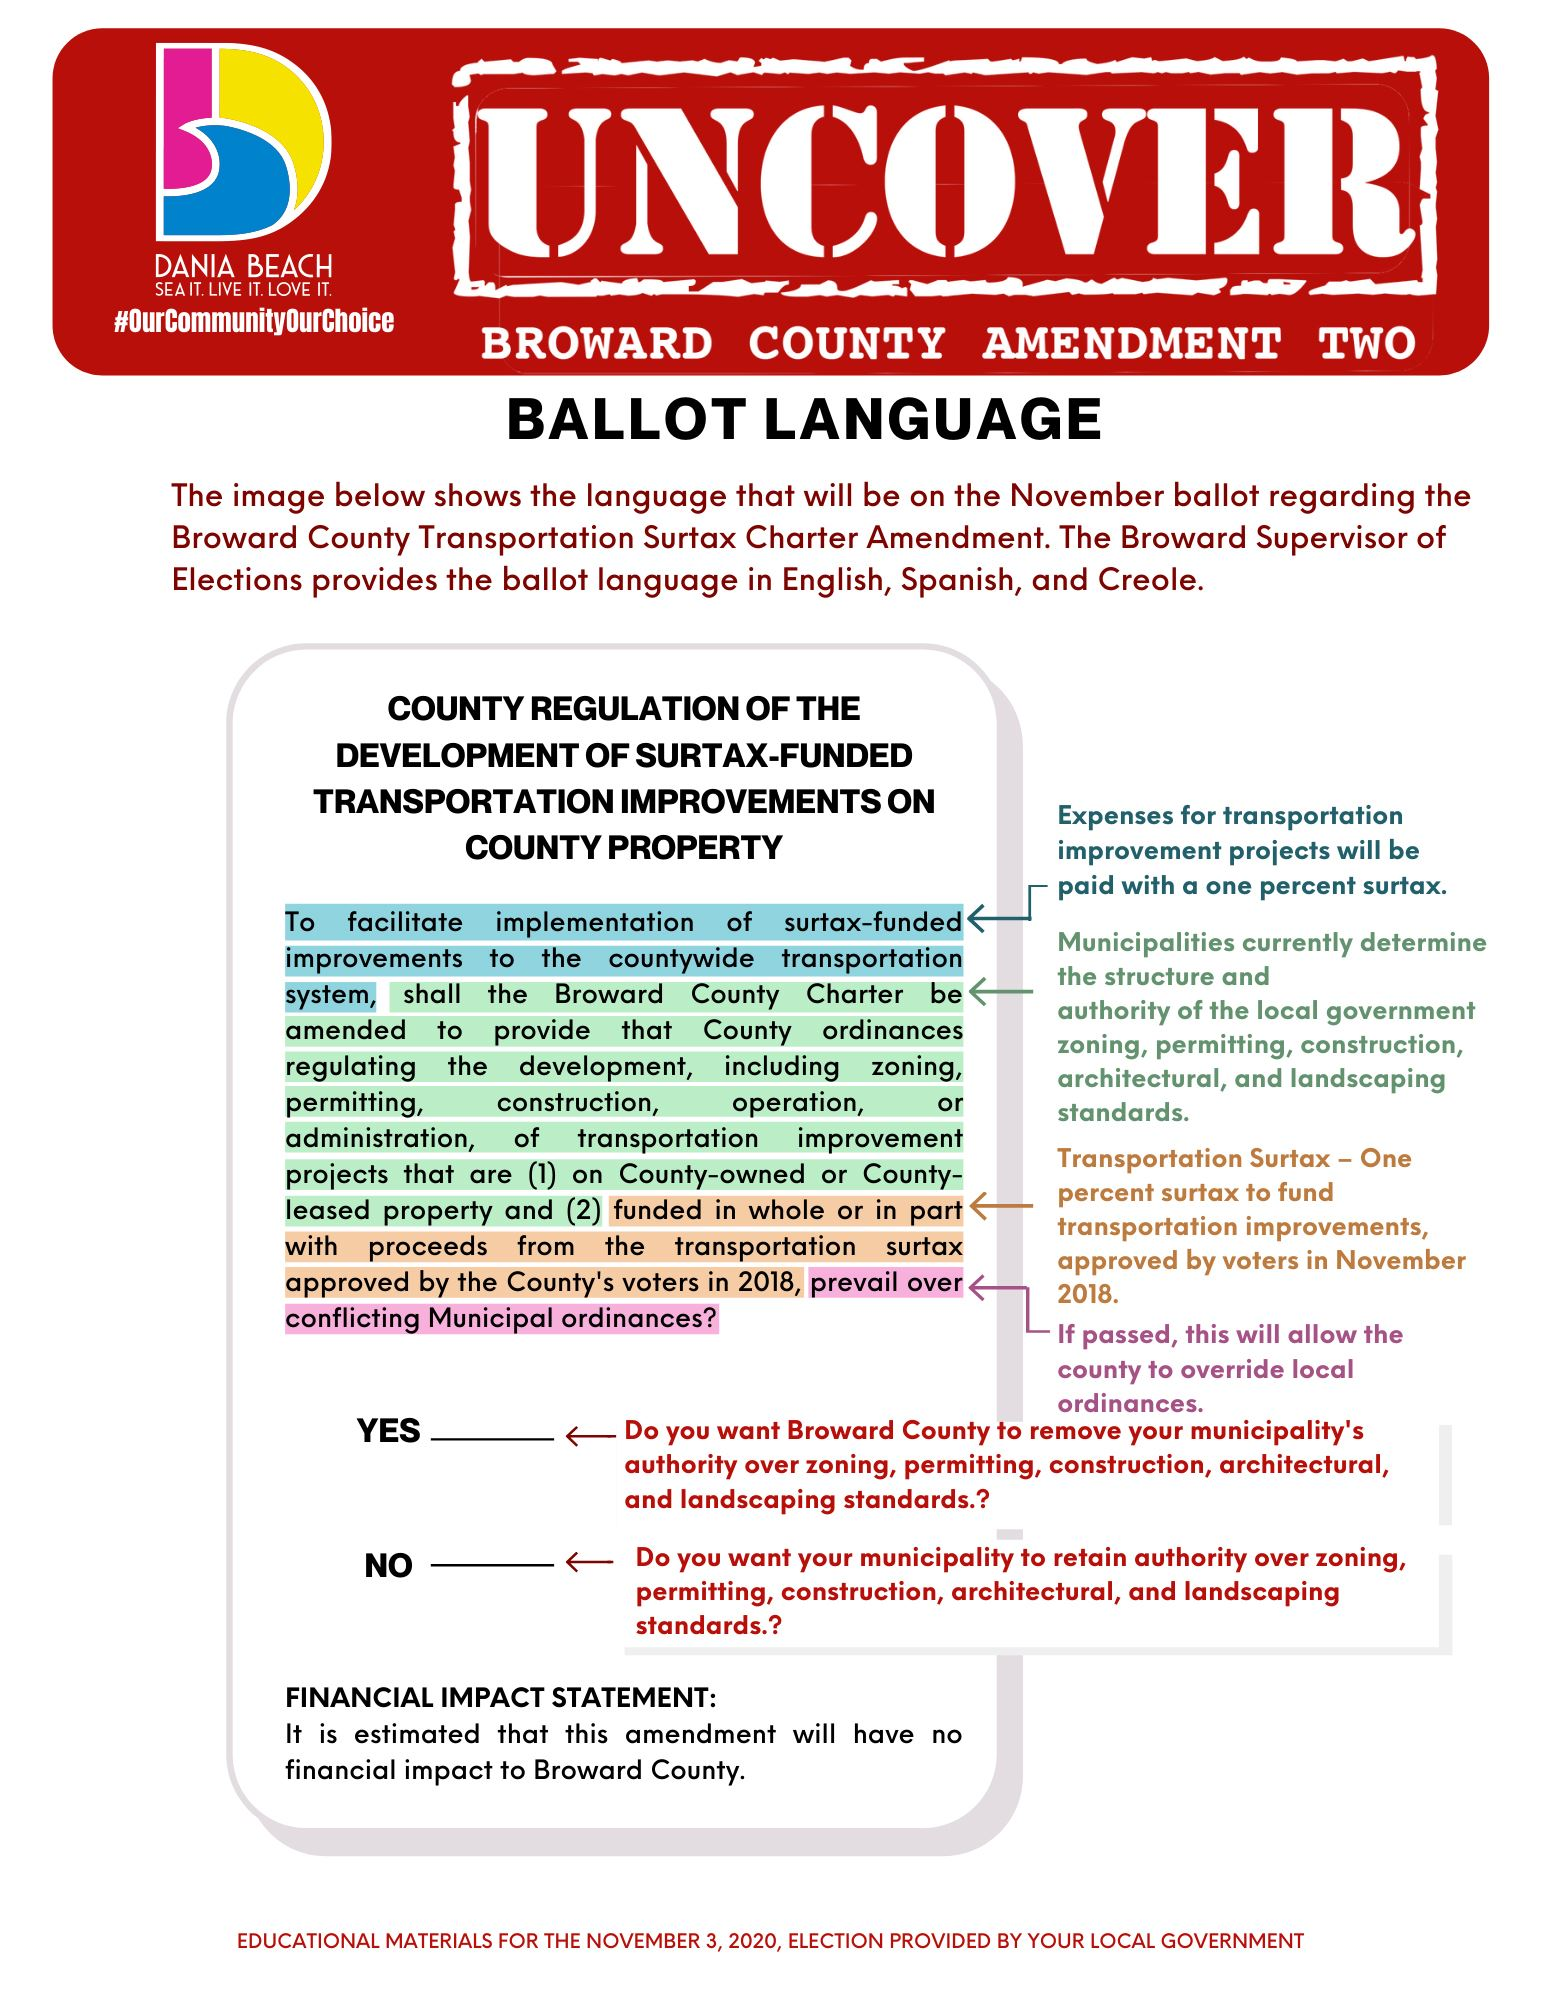 Uncover_Poster Ballot Language 8.5x11 Folder Banner Dania Beach Florida Home Rule